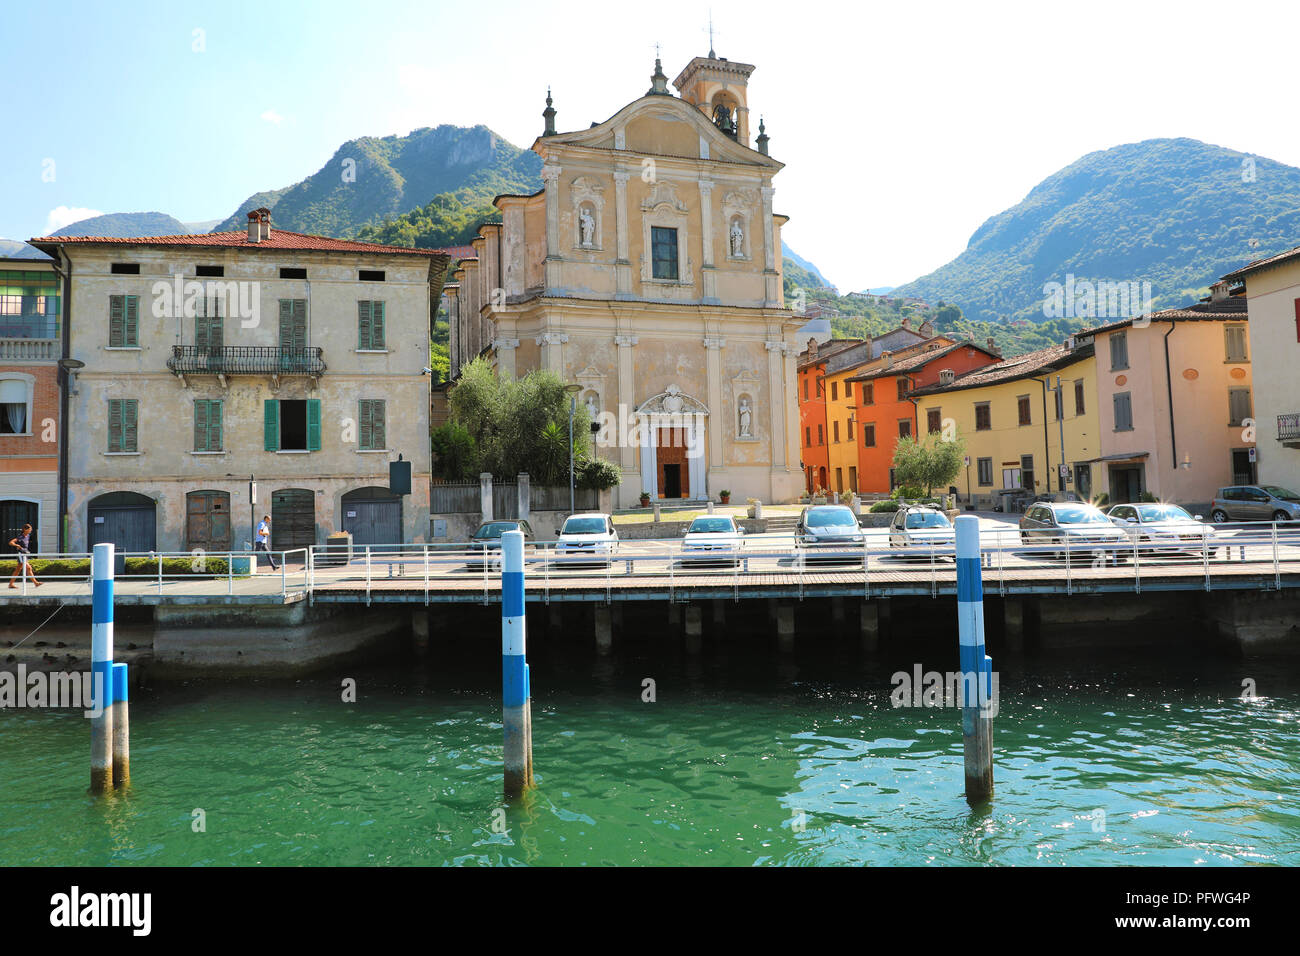 MONTE ISOLA, ITALY - AUGUST 20, 2018: view of small village with church on Monte Isola island in the middle of Lake Iseo, Italy - Stock Image